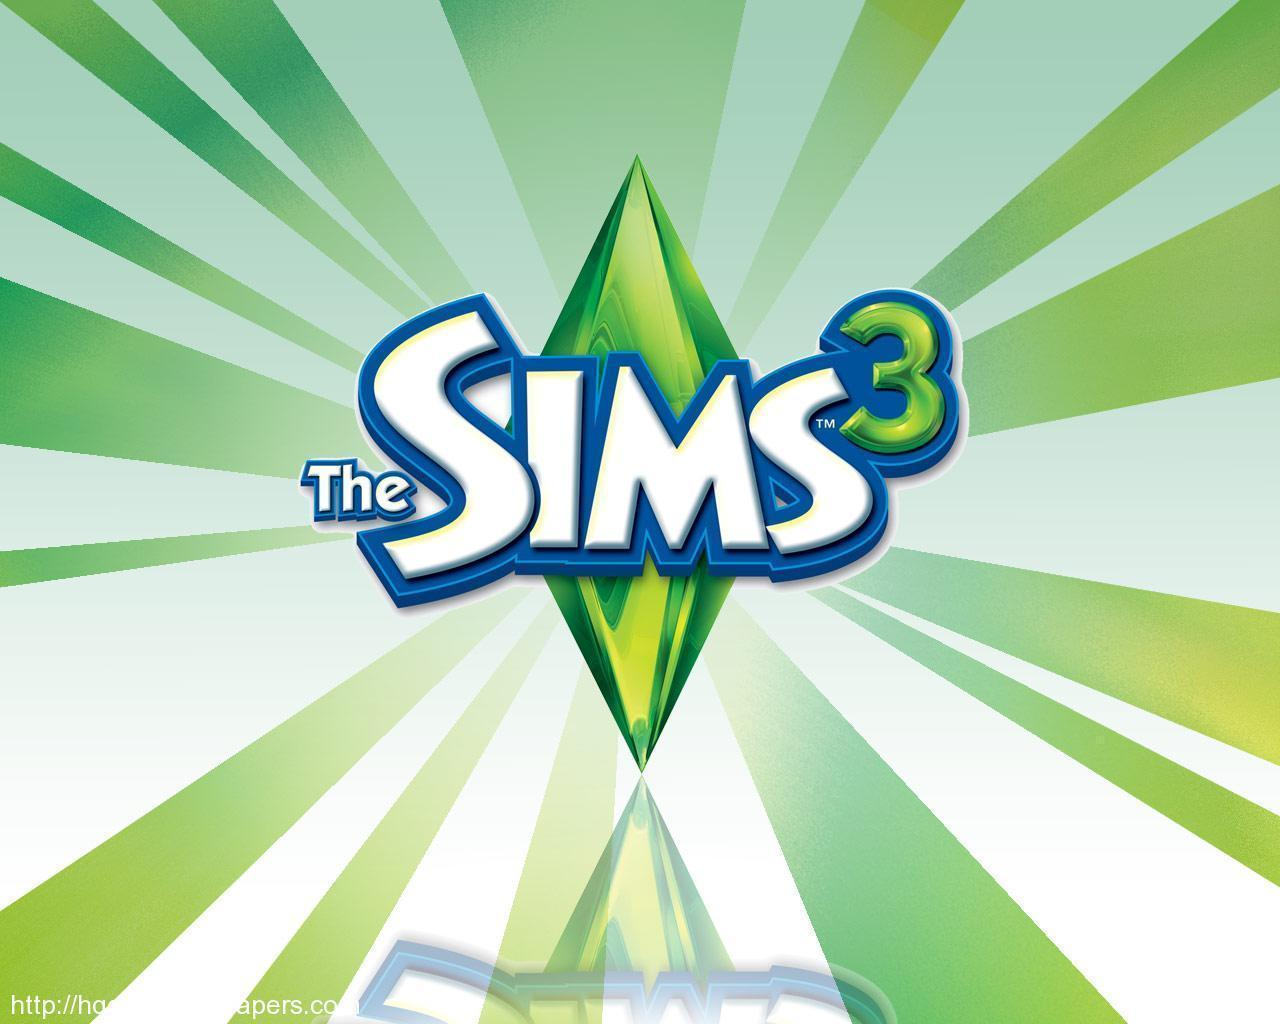 Sims 3 Game High Quality Wallpapers widescreen wallpapers